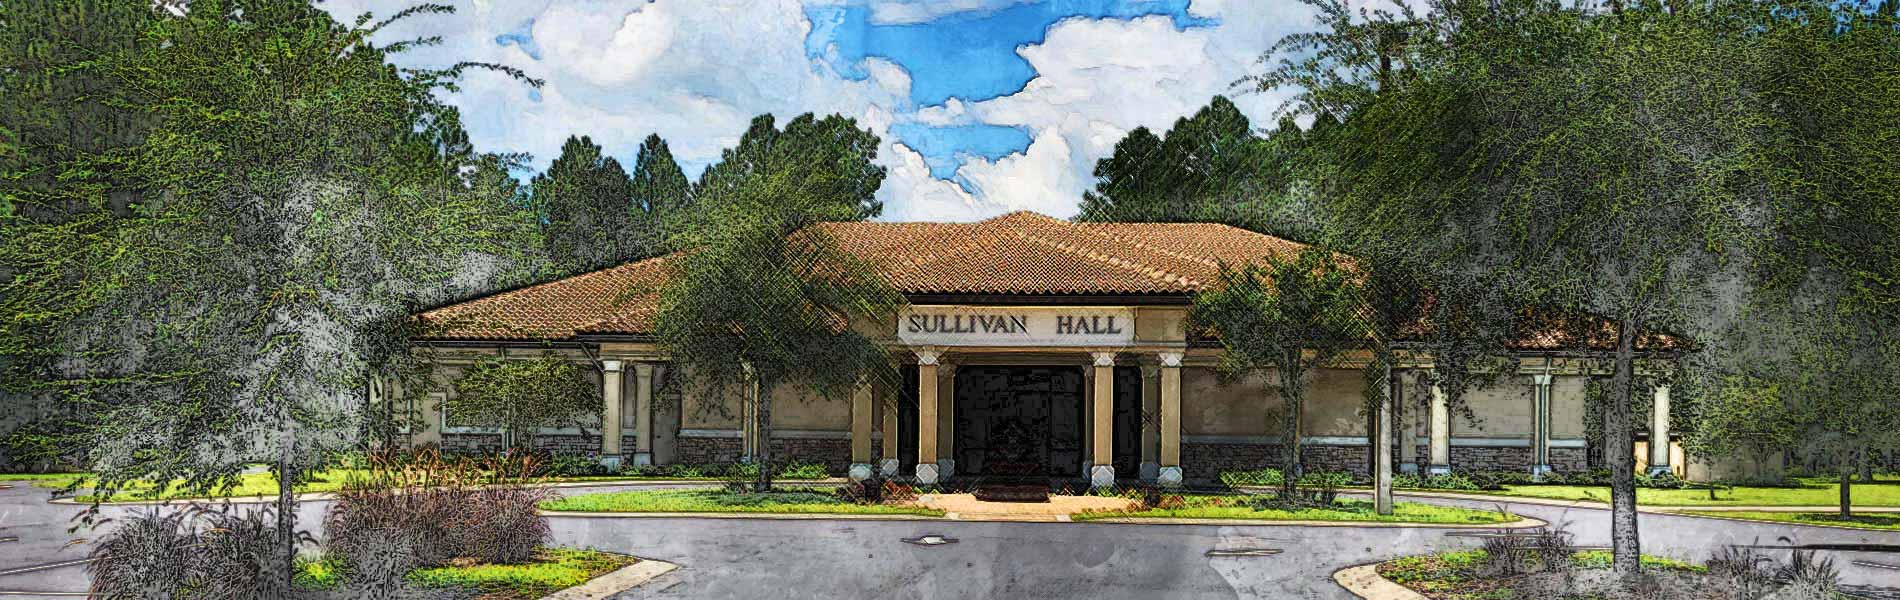 SULLIVAN HALL CONSTRUCTION Rendering